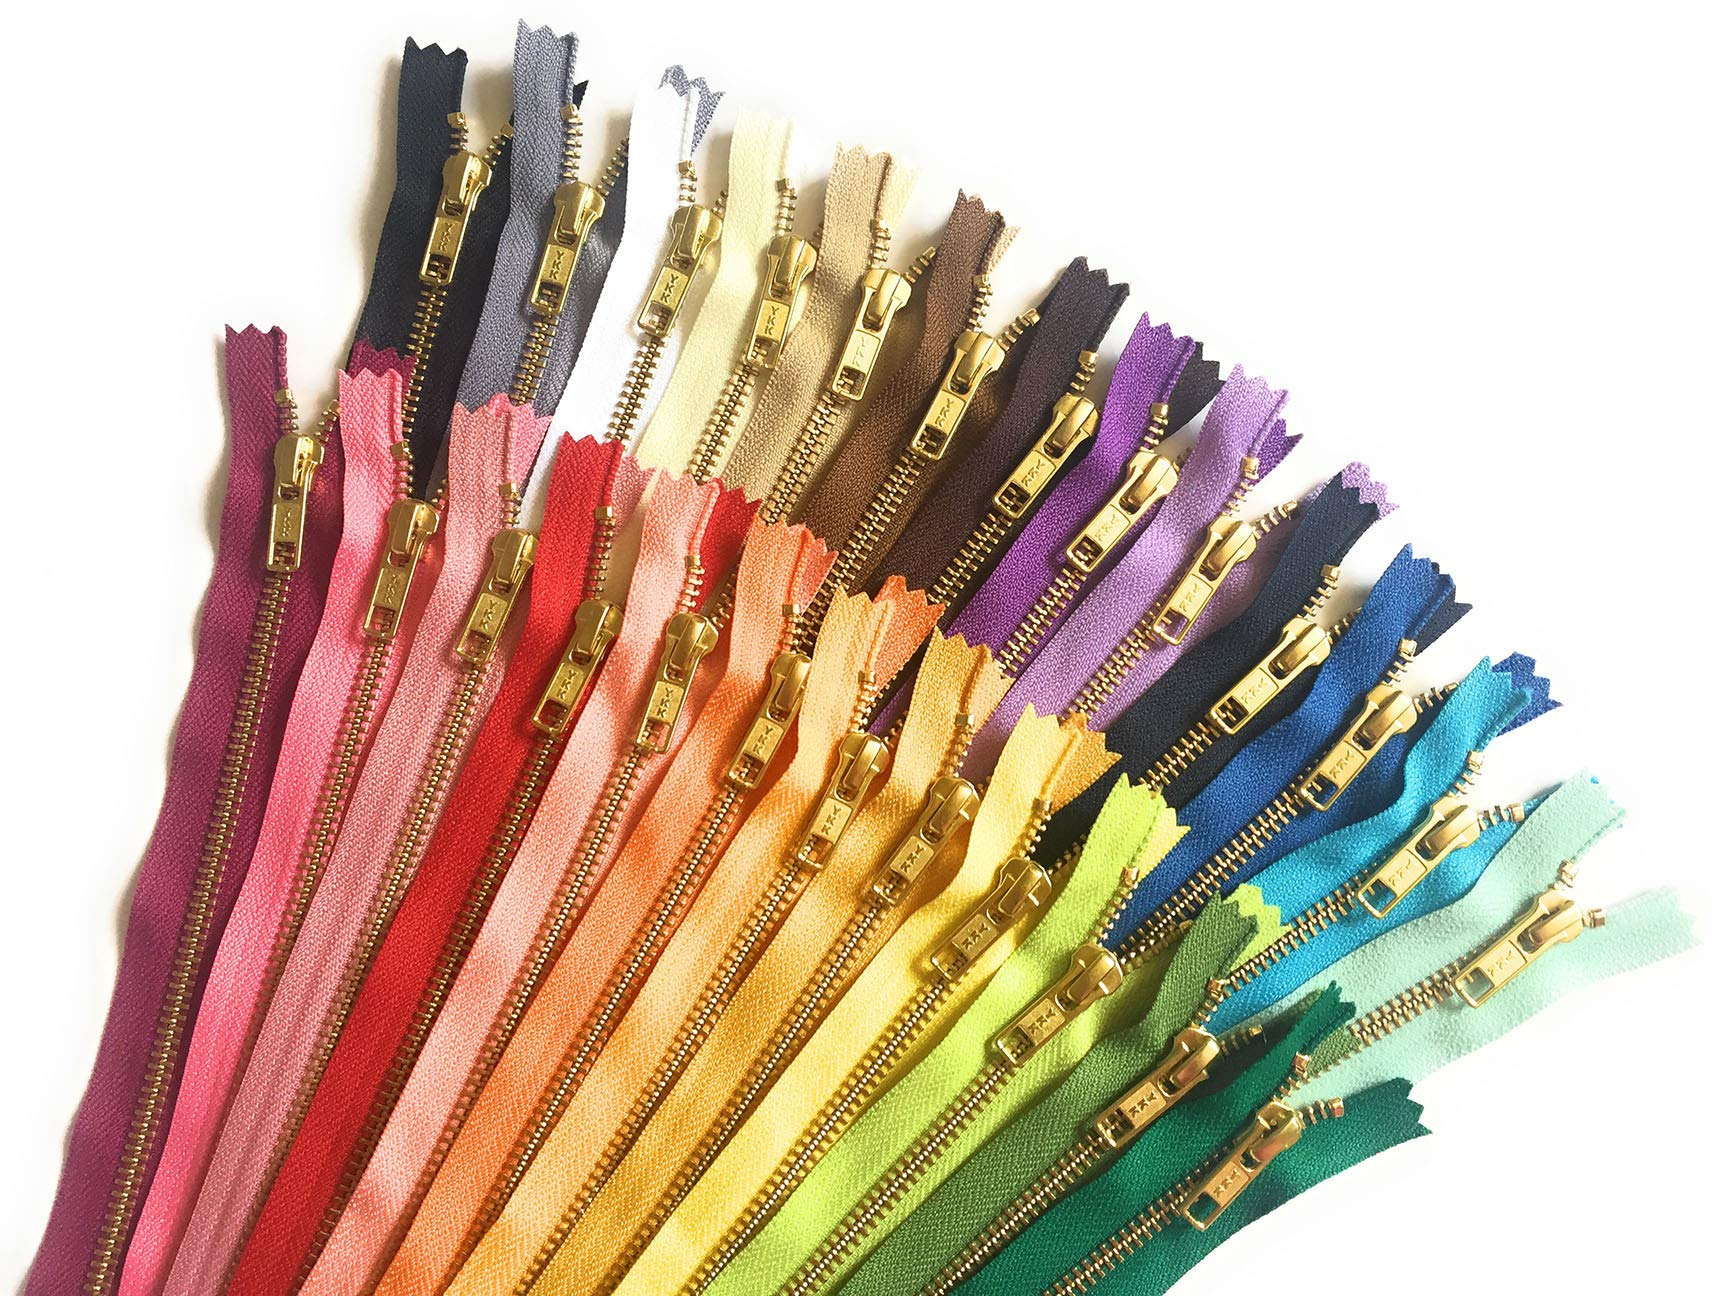 Mixed Pack of Assorted Gold Metal YKK Zippers No. 5 Use for Sewing Crafts Pouches 25 Colors by Craftbot